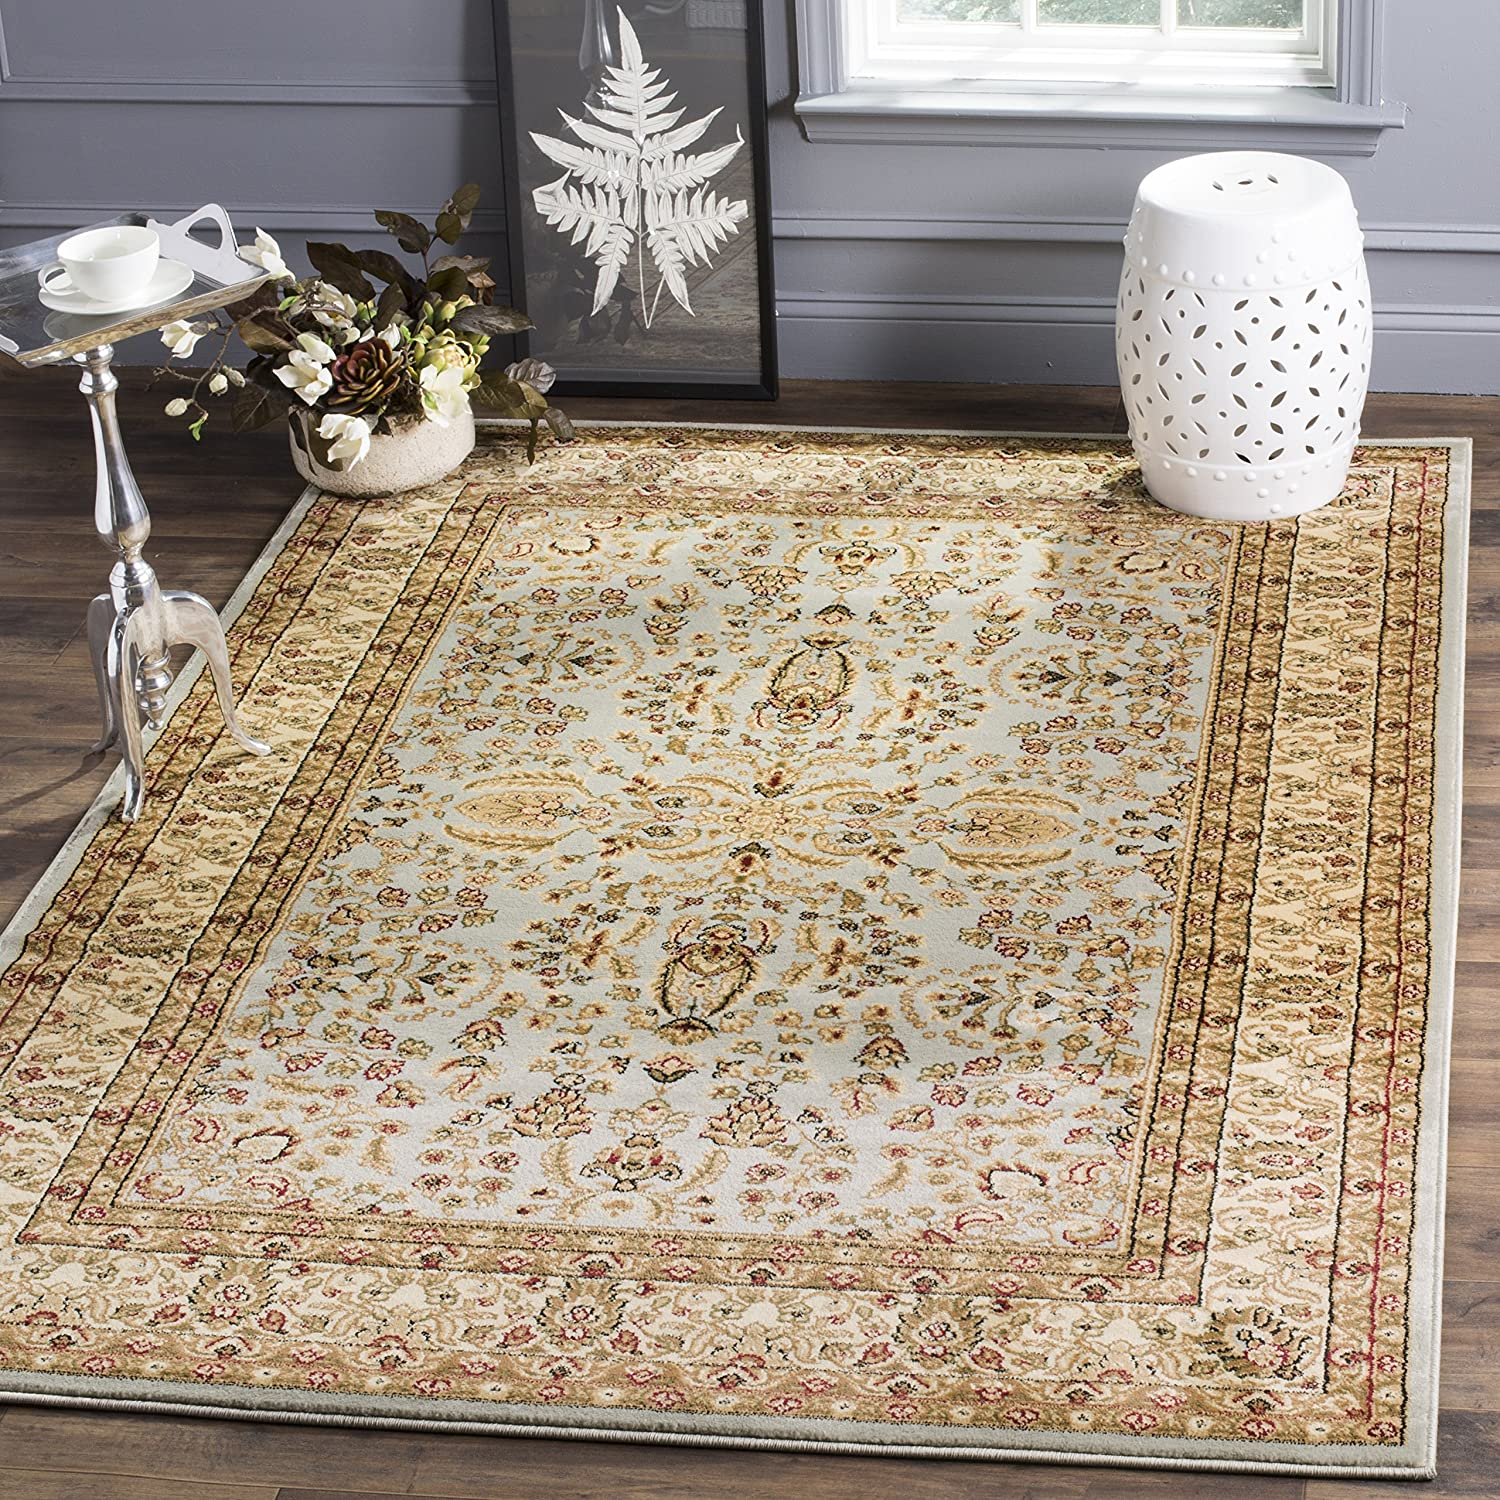 Safavieh Lyndhurst Collection LNH214G Grey and Beige Area Rug, 2 feet 3 inches by 4 feet (2'3 x 4') LNH214G-24